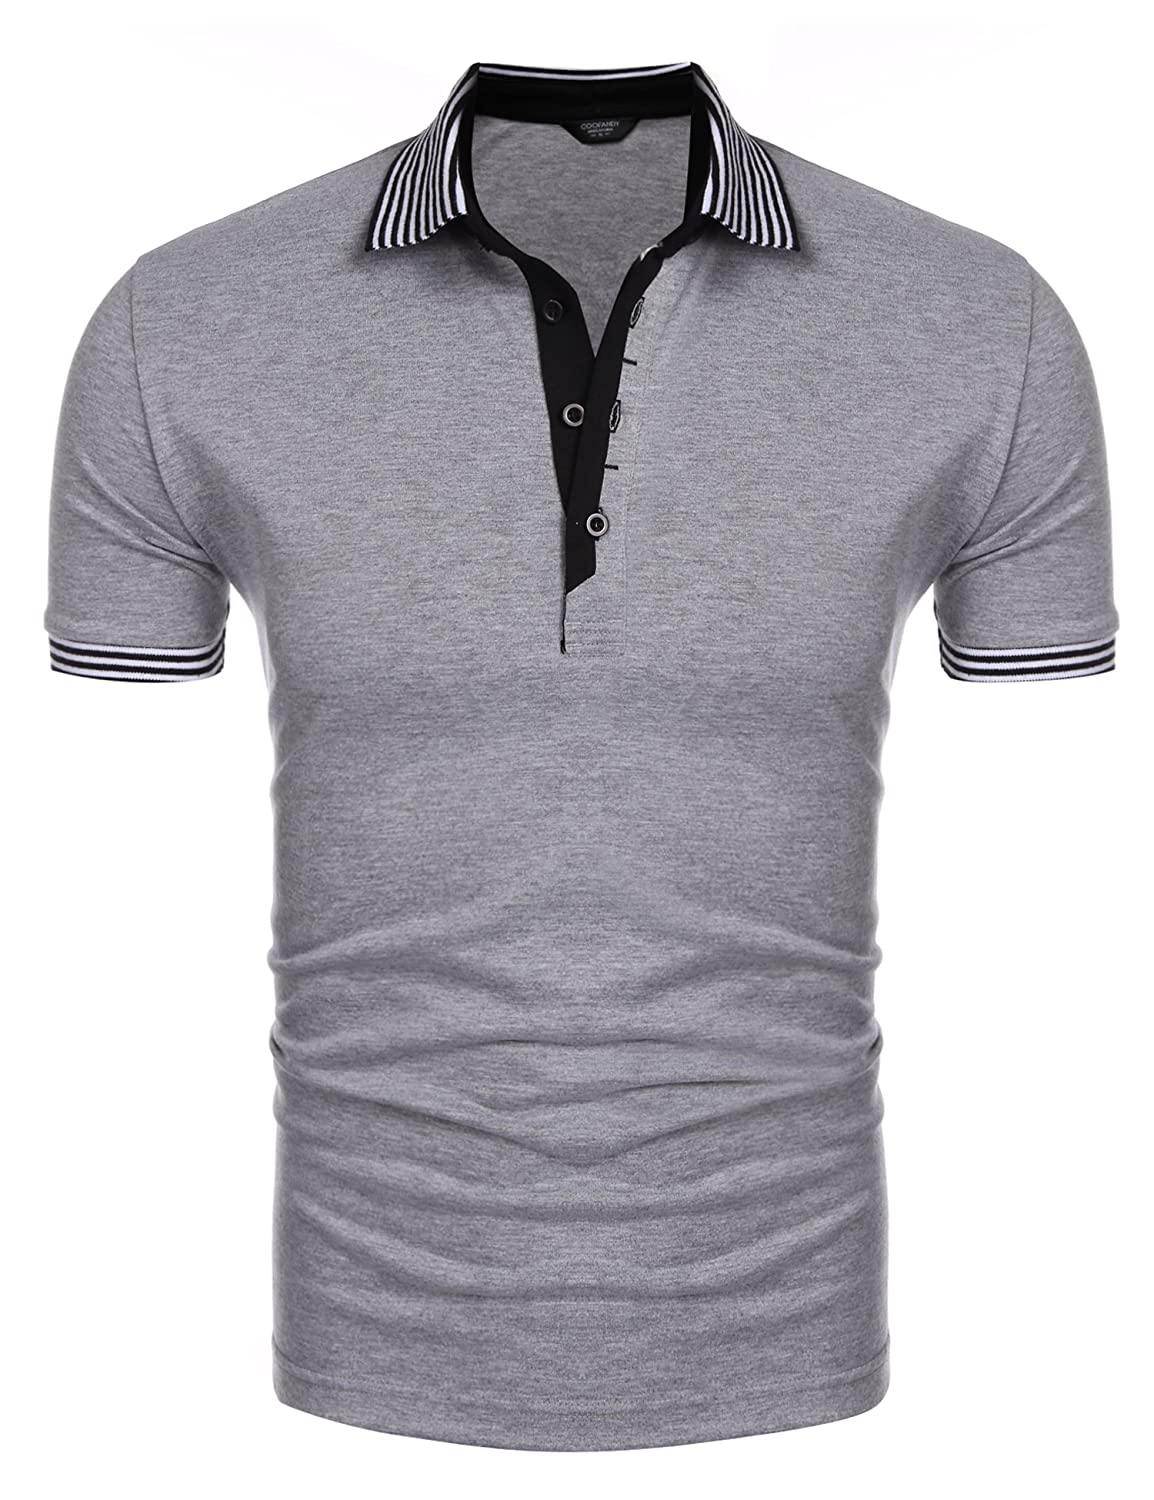 COOFANDY Men's Short Sleeve Casual Striped Collar Classic Fit Polo Shirts ETJ006279